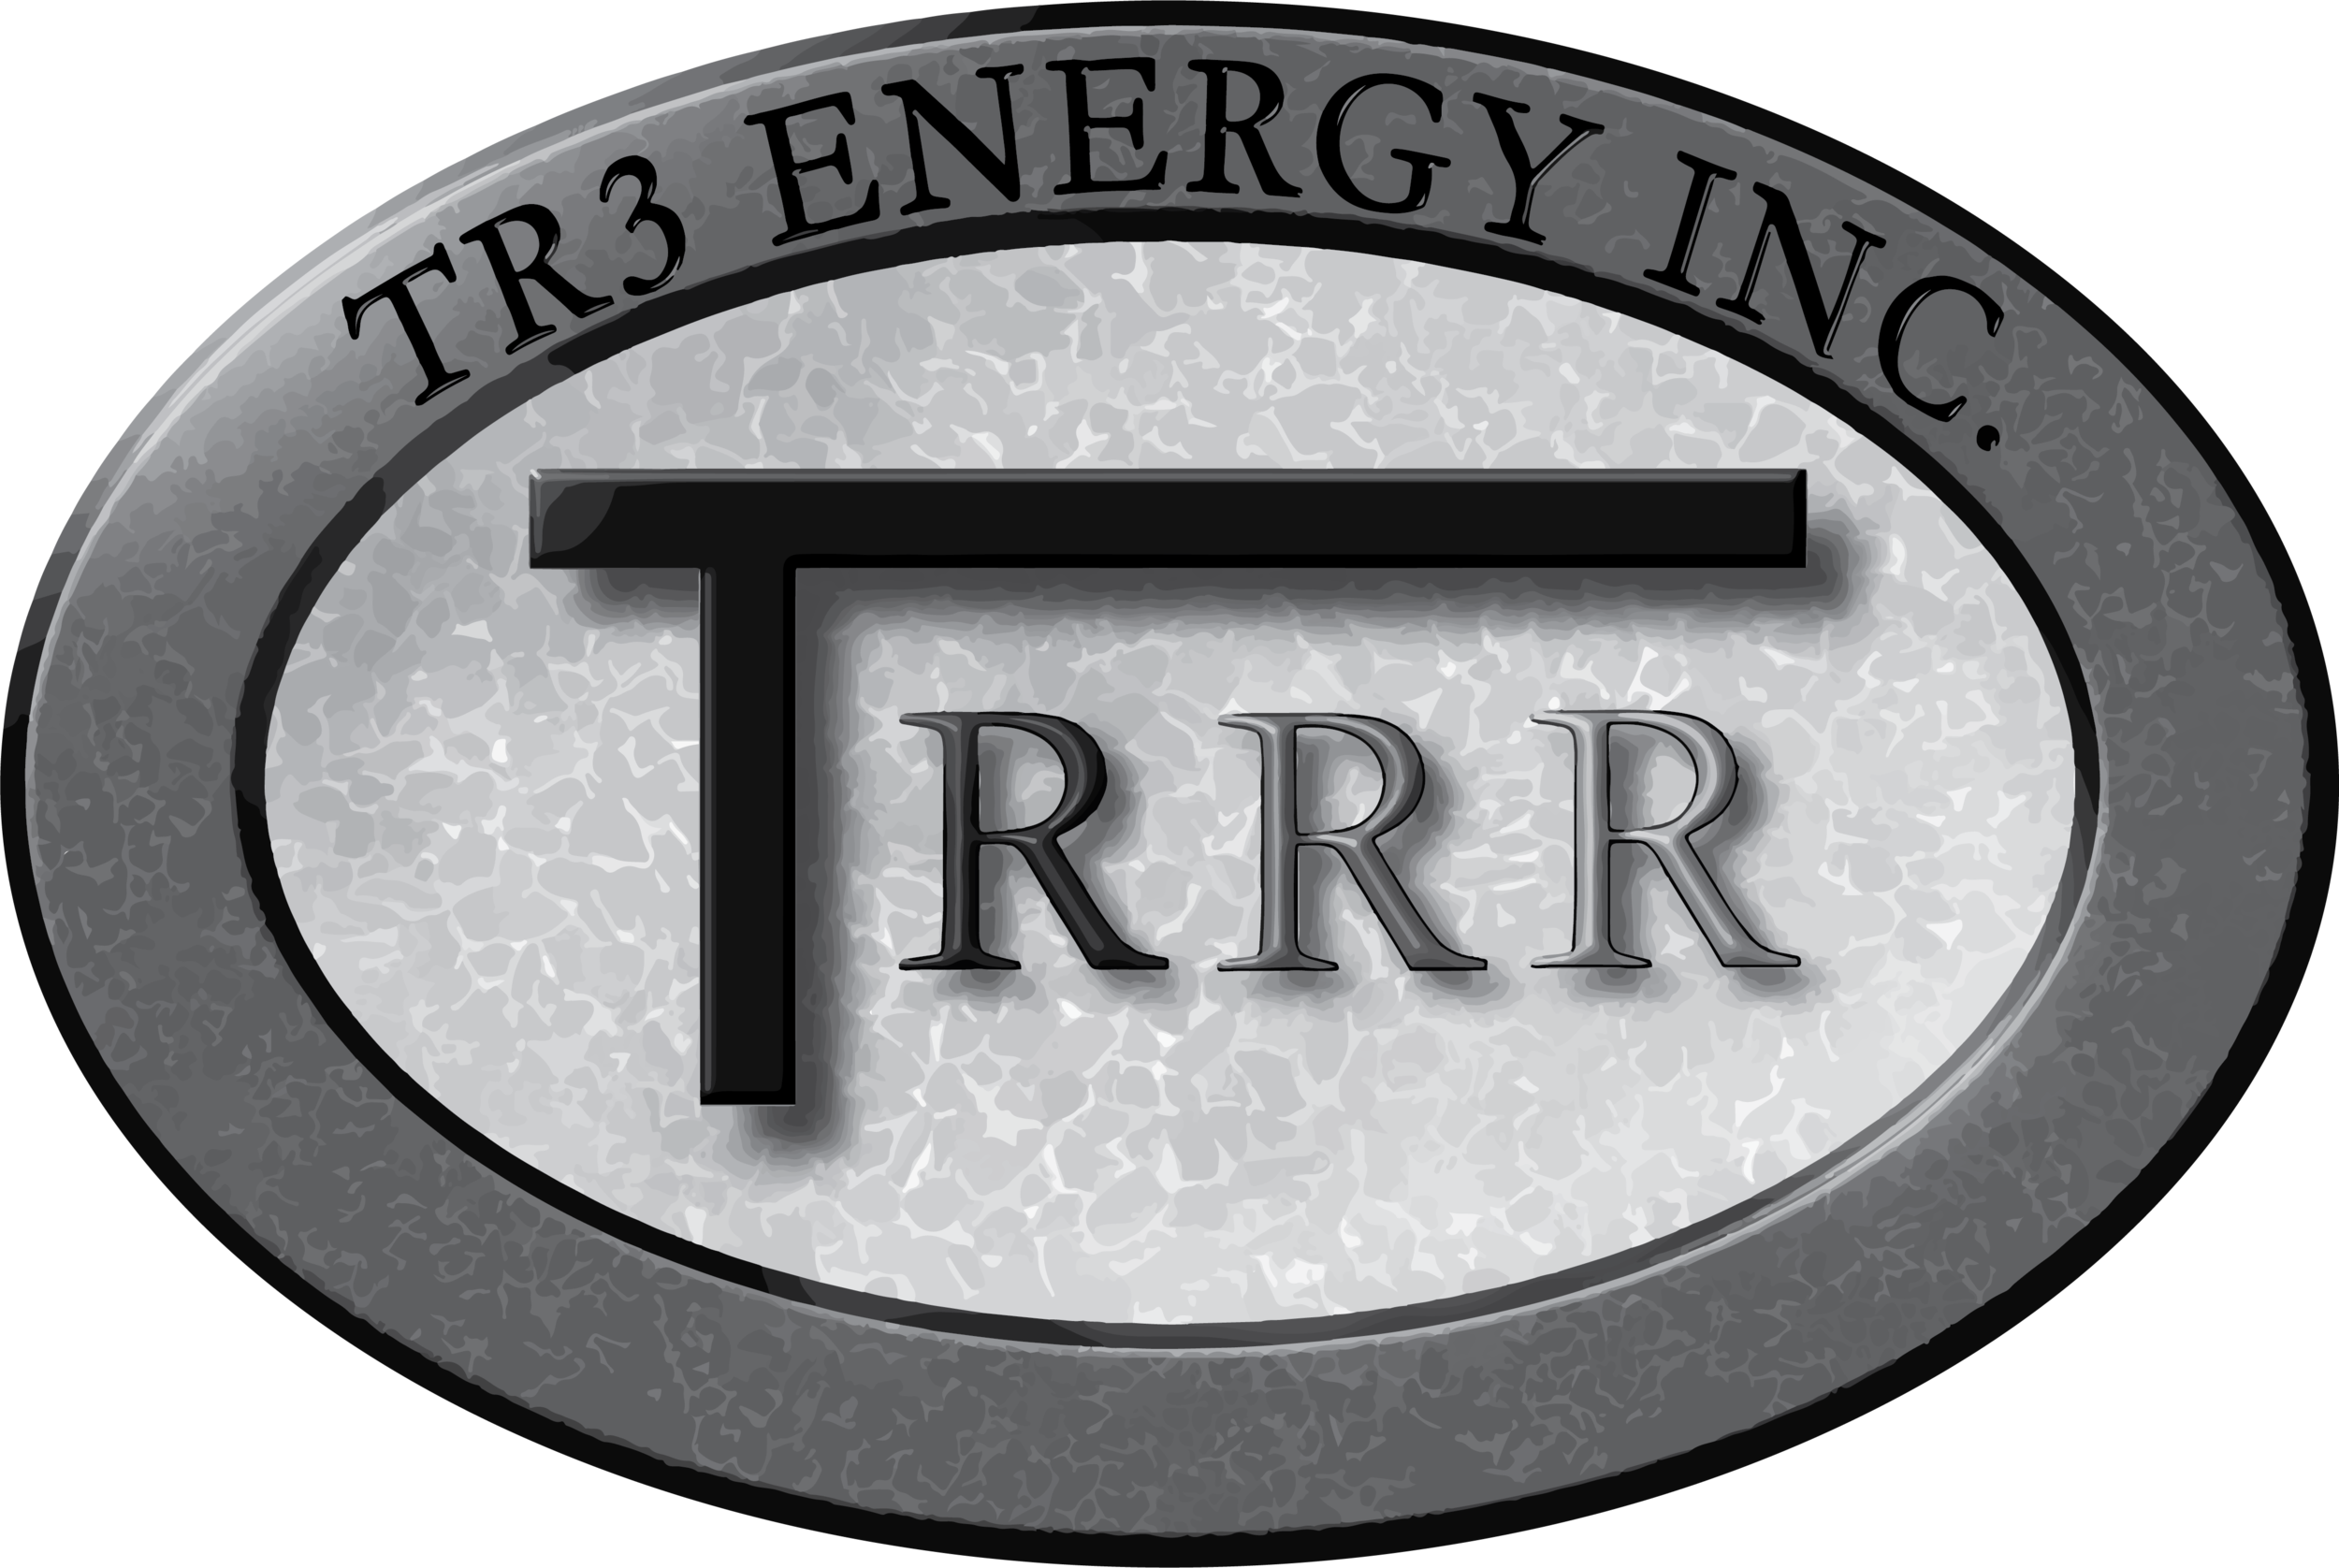 TR3 Energy Logo.png